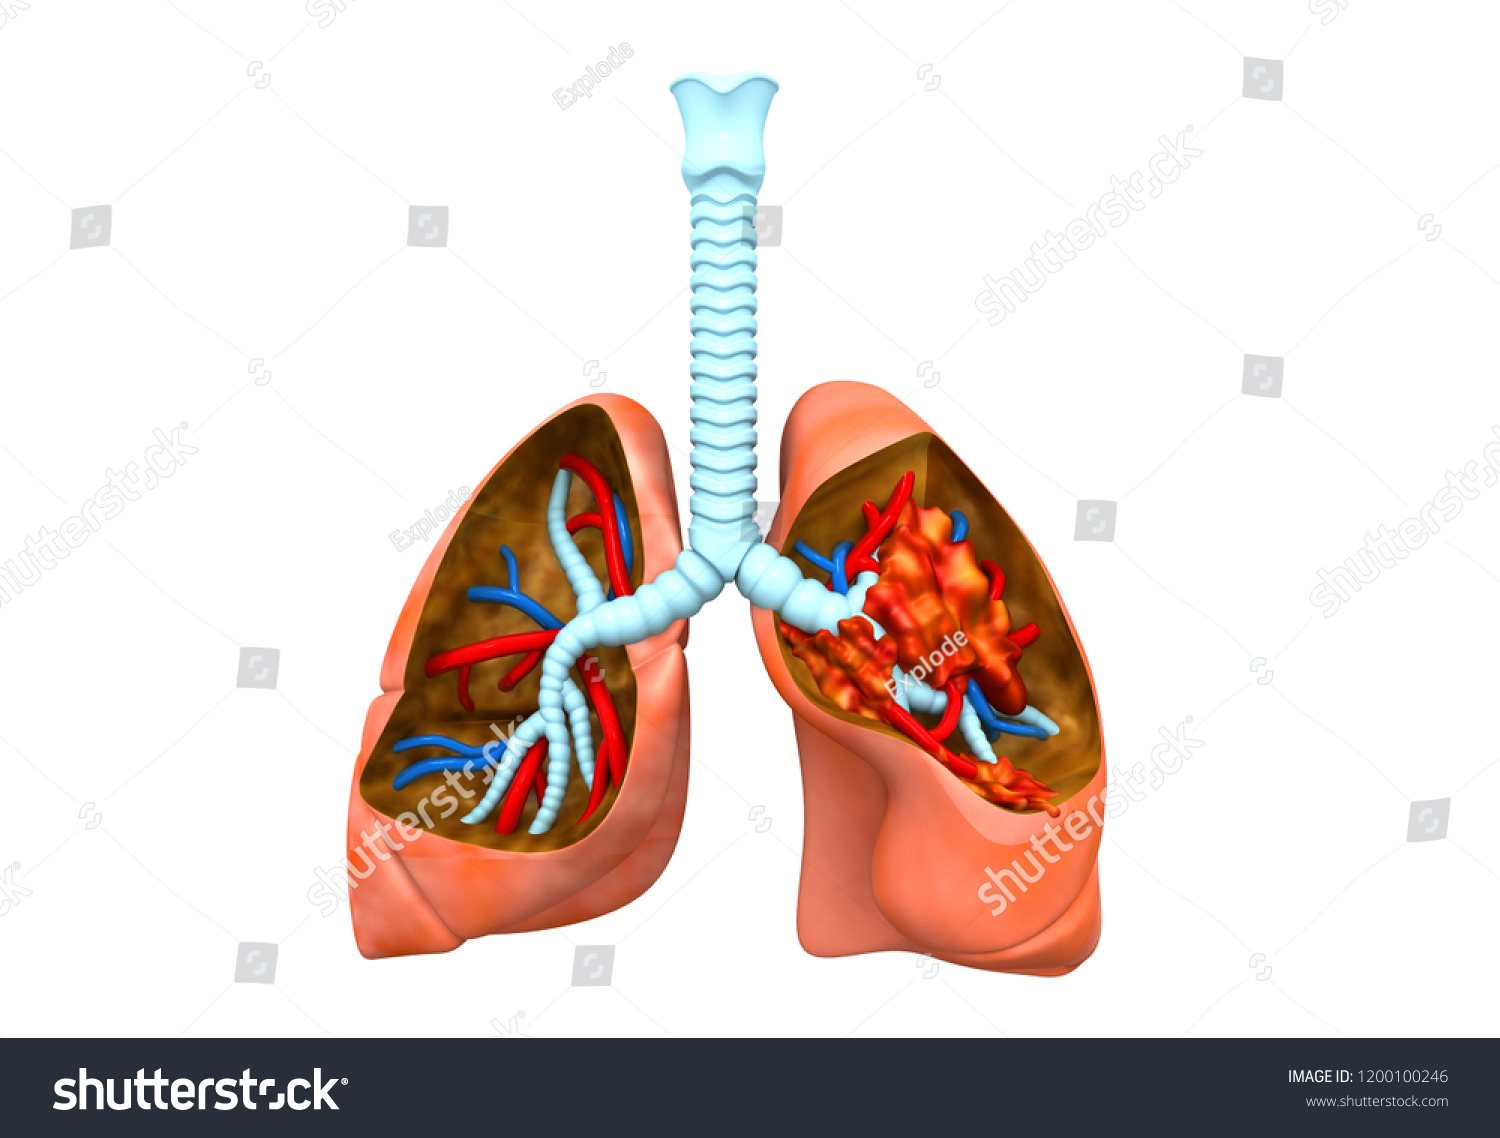 Anatomy Human Lungs Lung Disease 3 D Stock Illustration 1200100246